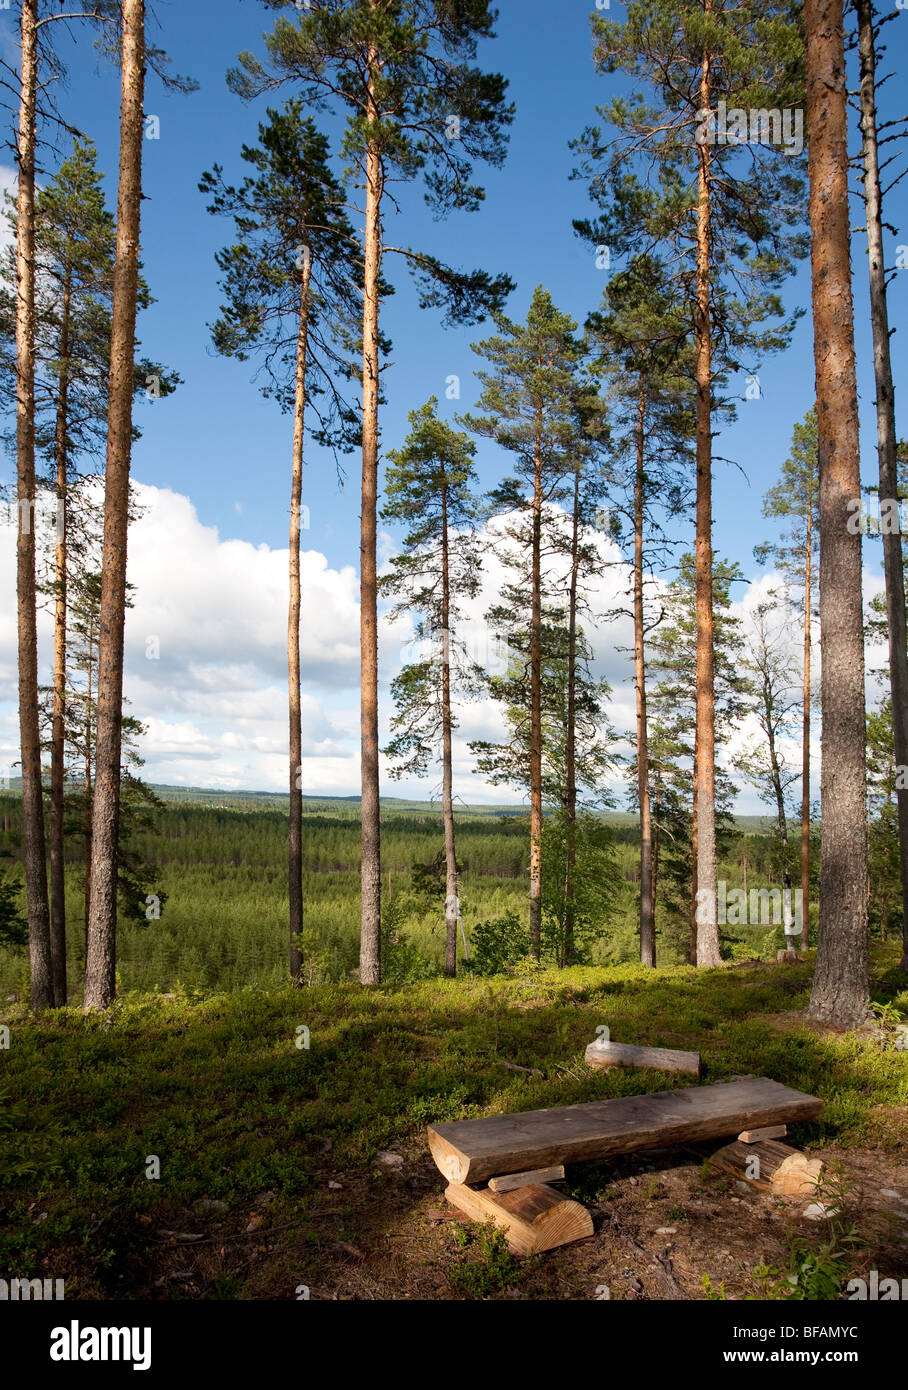 Log seat  at a hiking route in Finnish pine ( pinus sylvestris ) forest , Finland - Stock Image